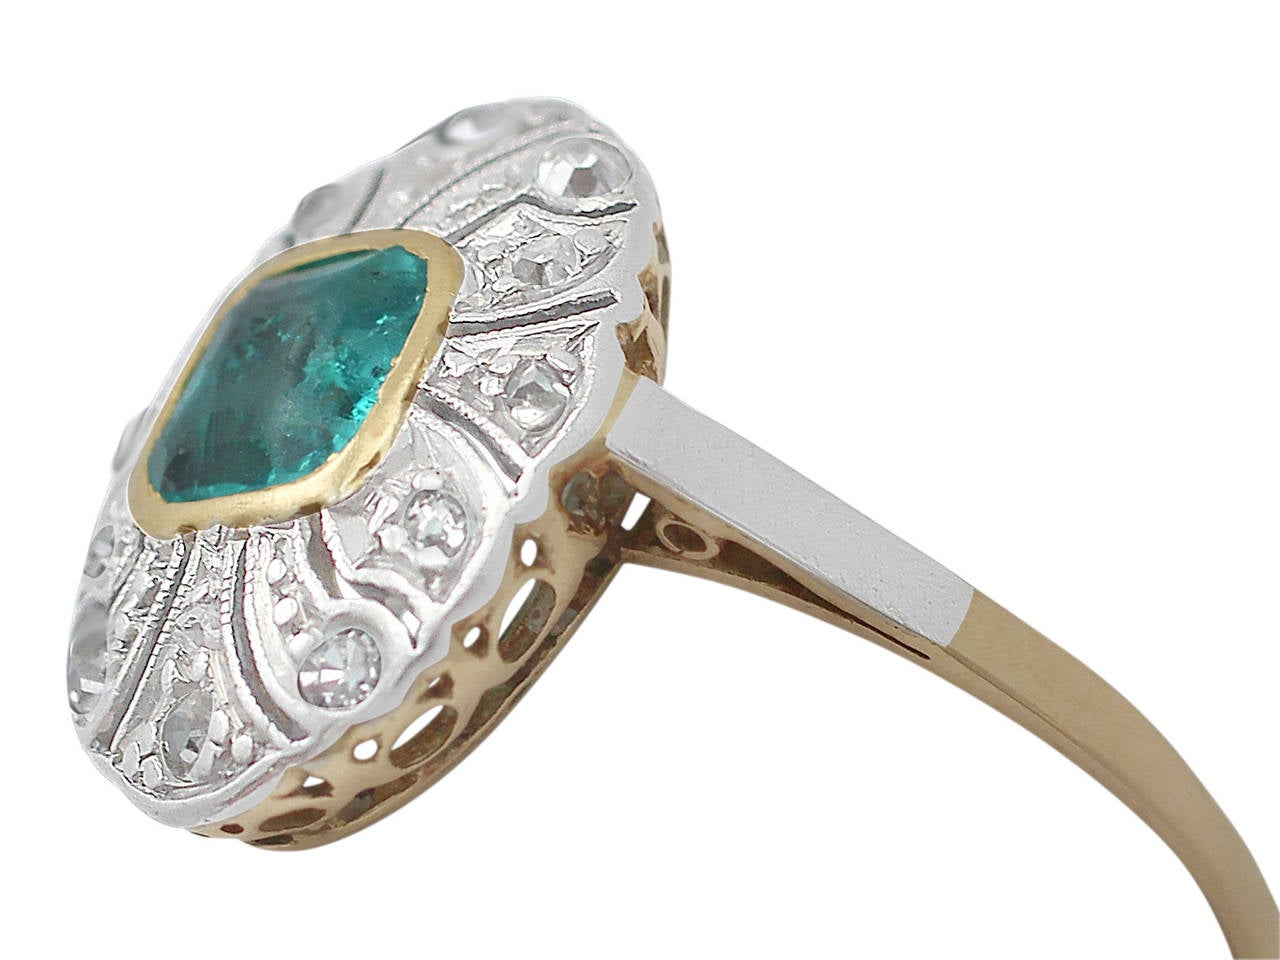 Antique emerald ring : S antique emerald and diamond yellow gold cocktail